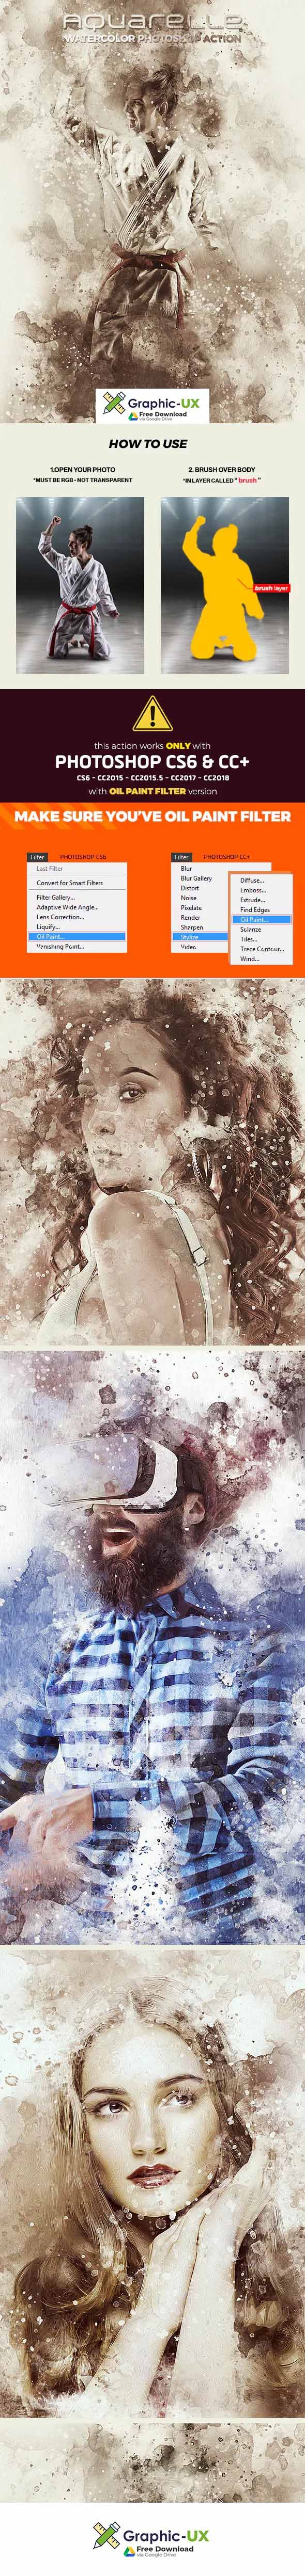 Aquarelle Watercolor Photoshop Action Free Download Graphicux